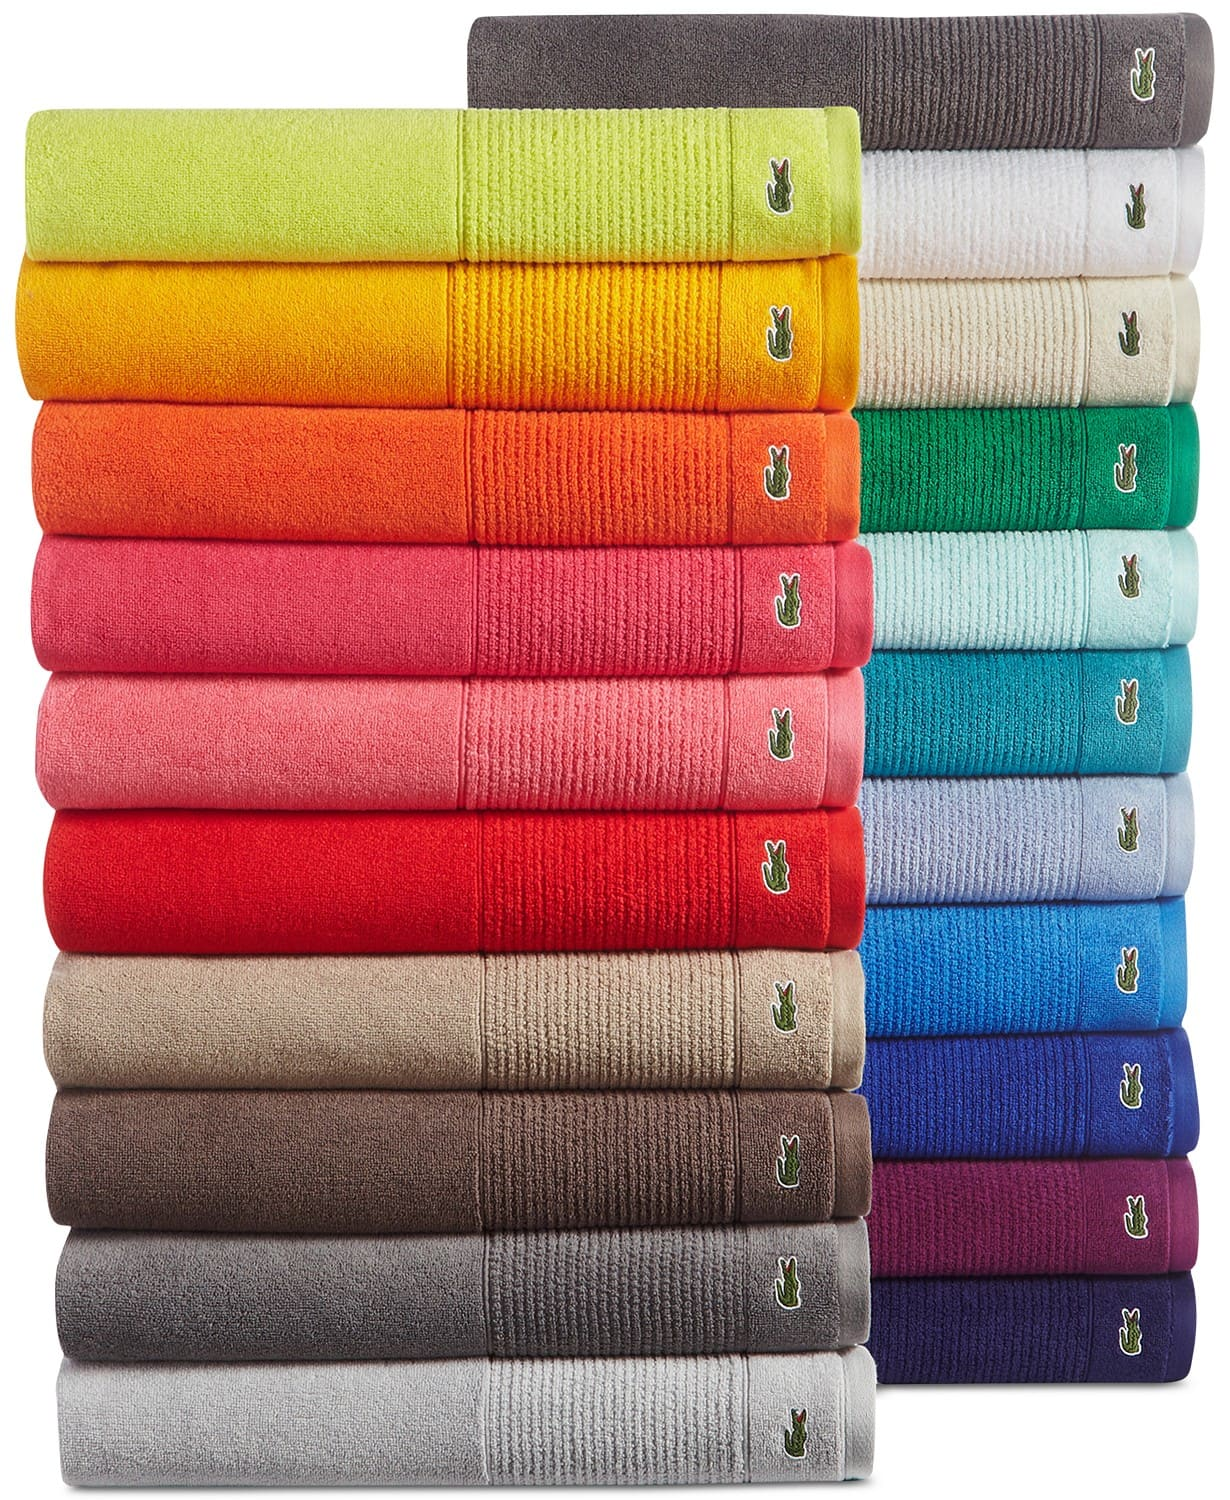 Macy's Lacoste Legend Supima Cotton Bath Towel Collection sale starting $7  only today